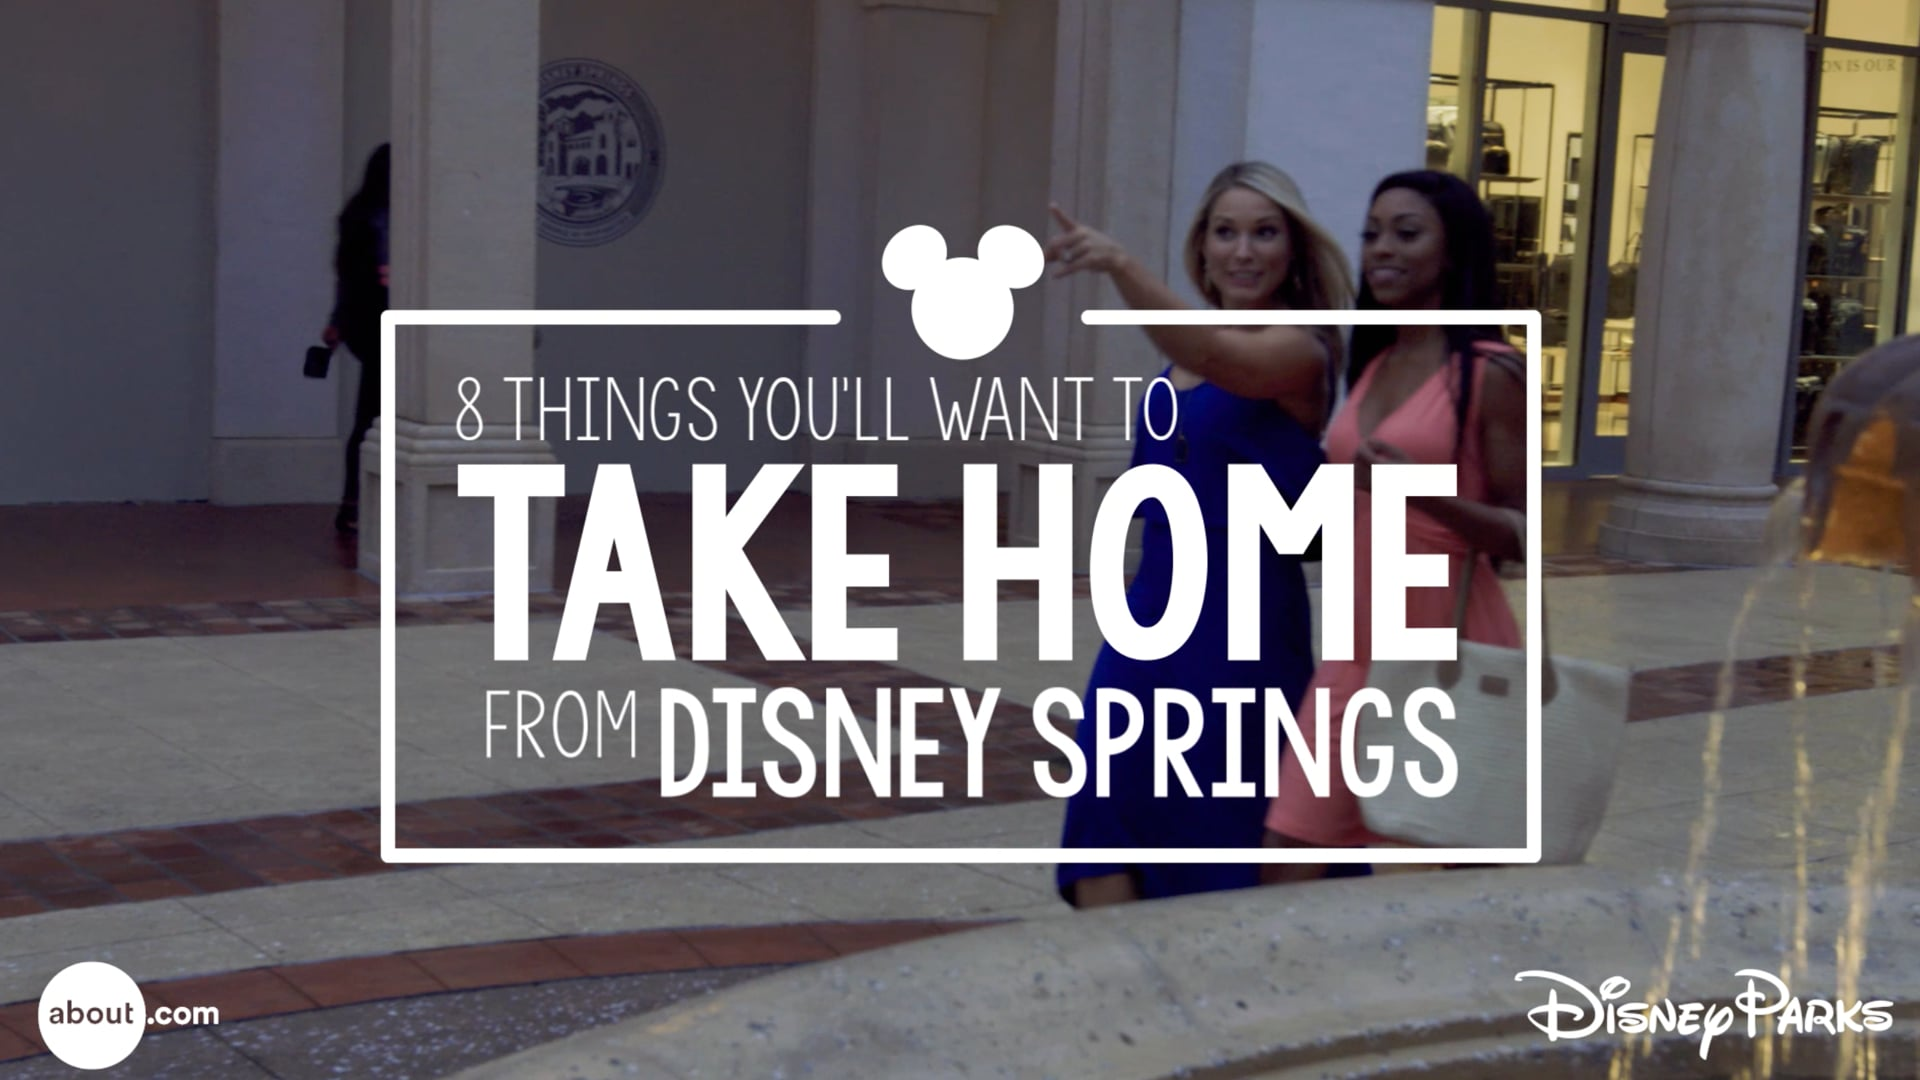 8 Things You'll Want to Take Home from Disney Springs